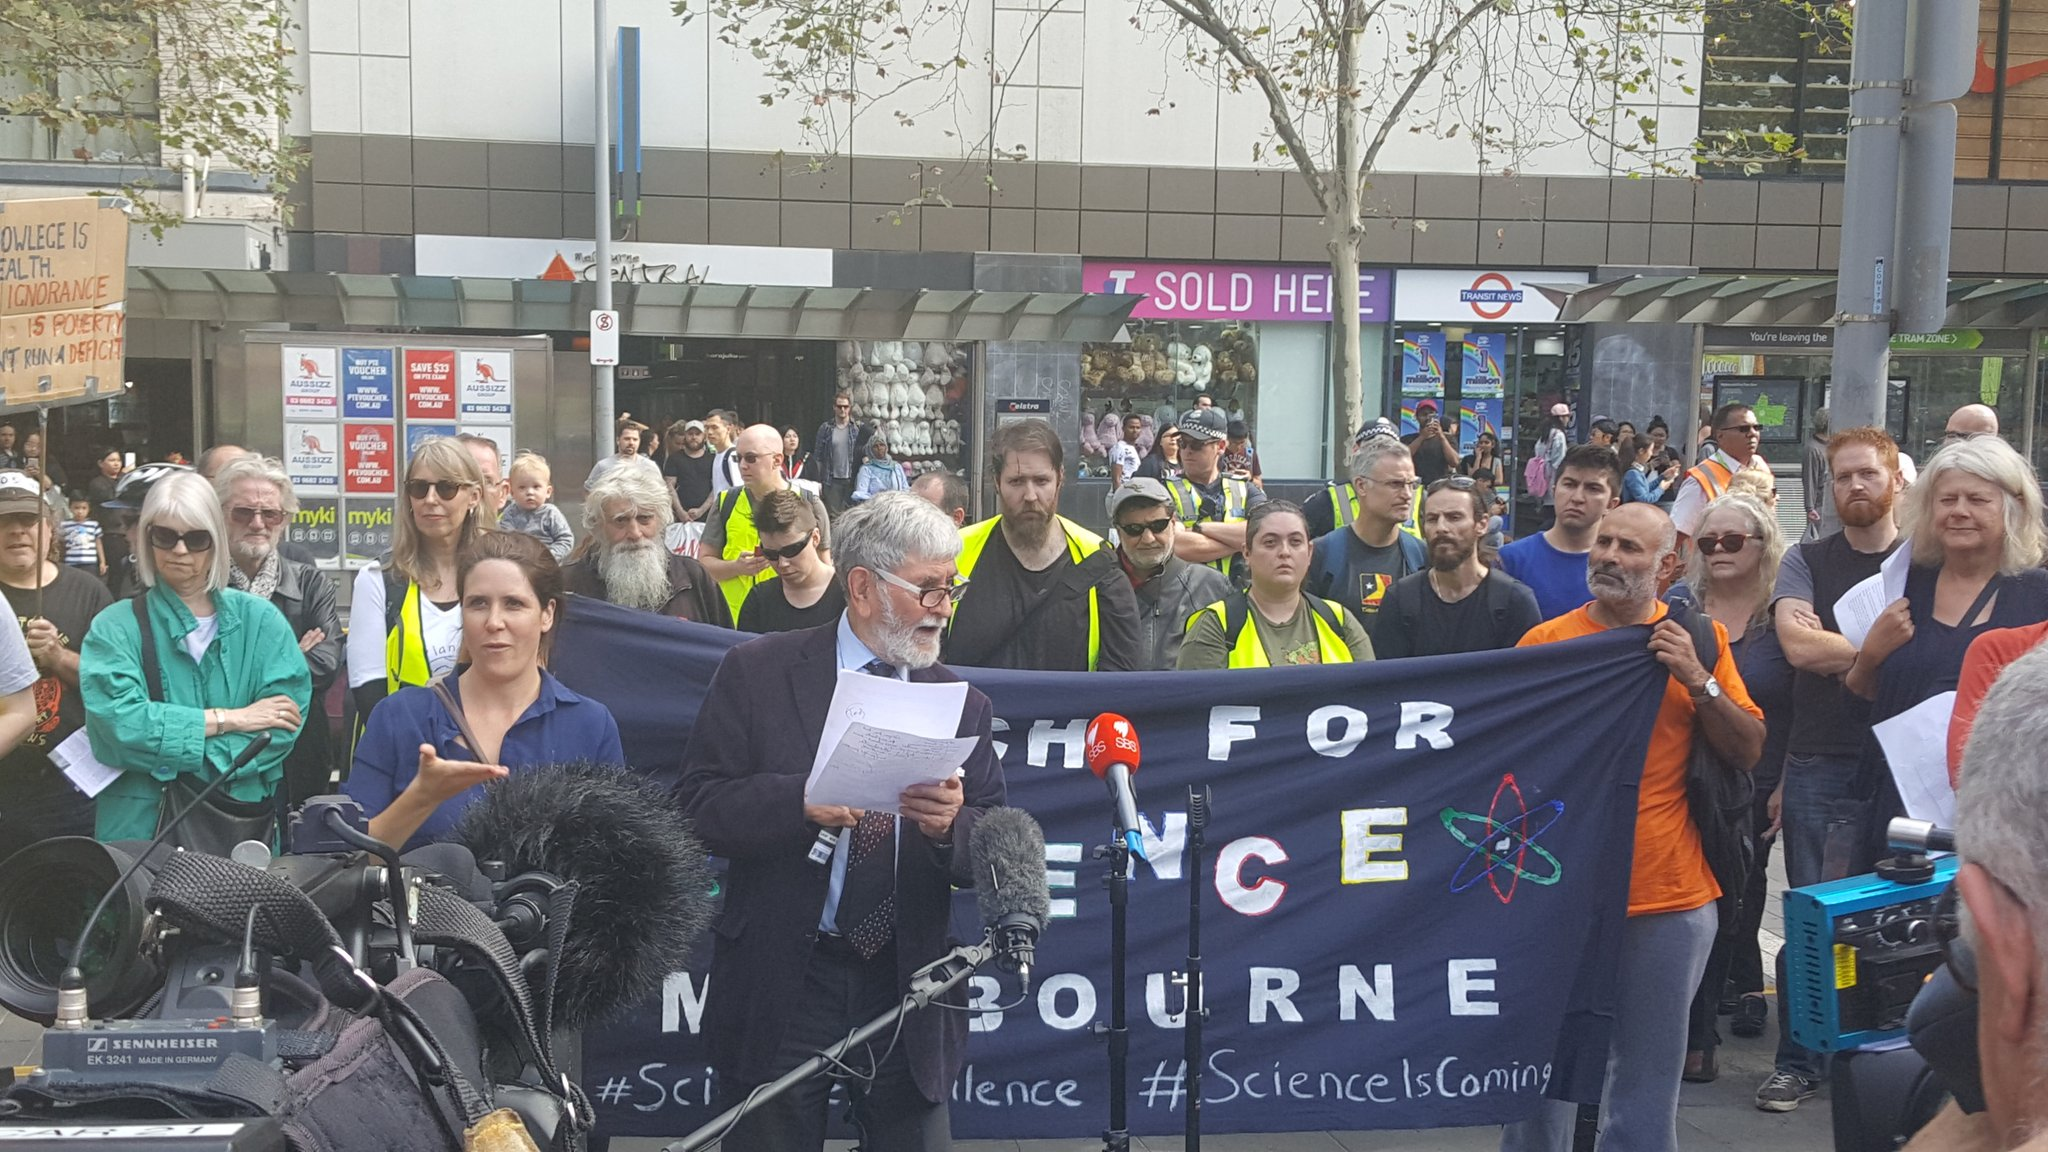 Science advocacy is not like a one shot vaccination we need to continue to keep up pressure: Barry Jones @ScienceMarchMel  #sciencemarchau https://t.co/gTLMHxR15M